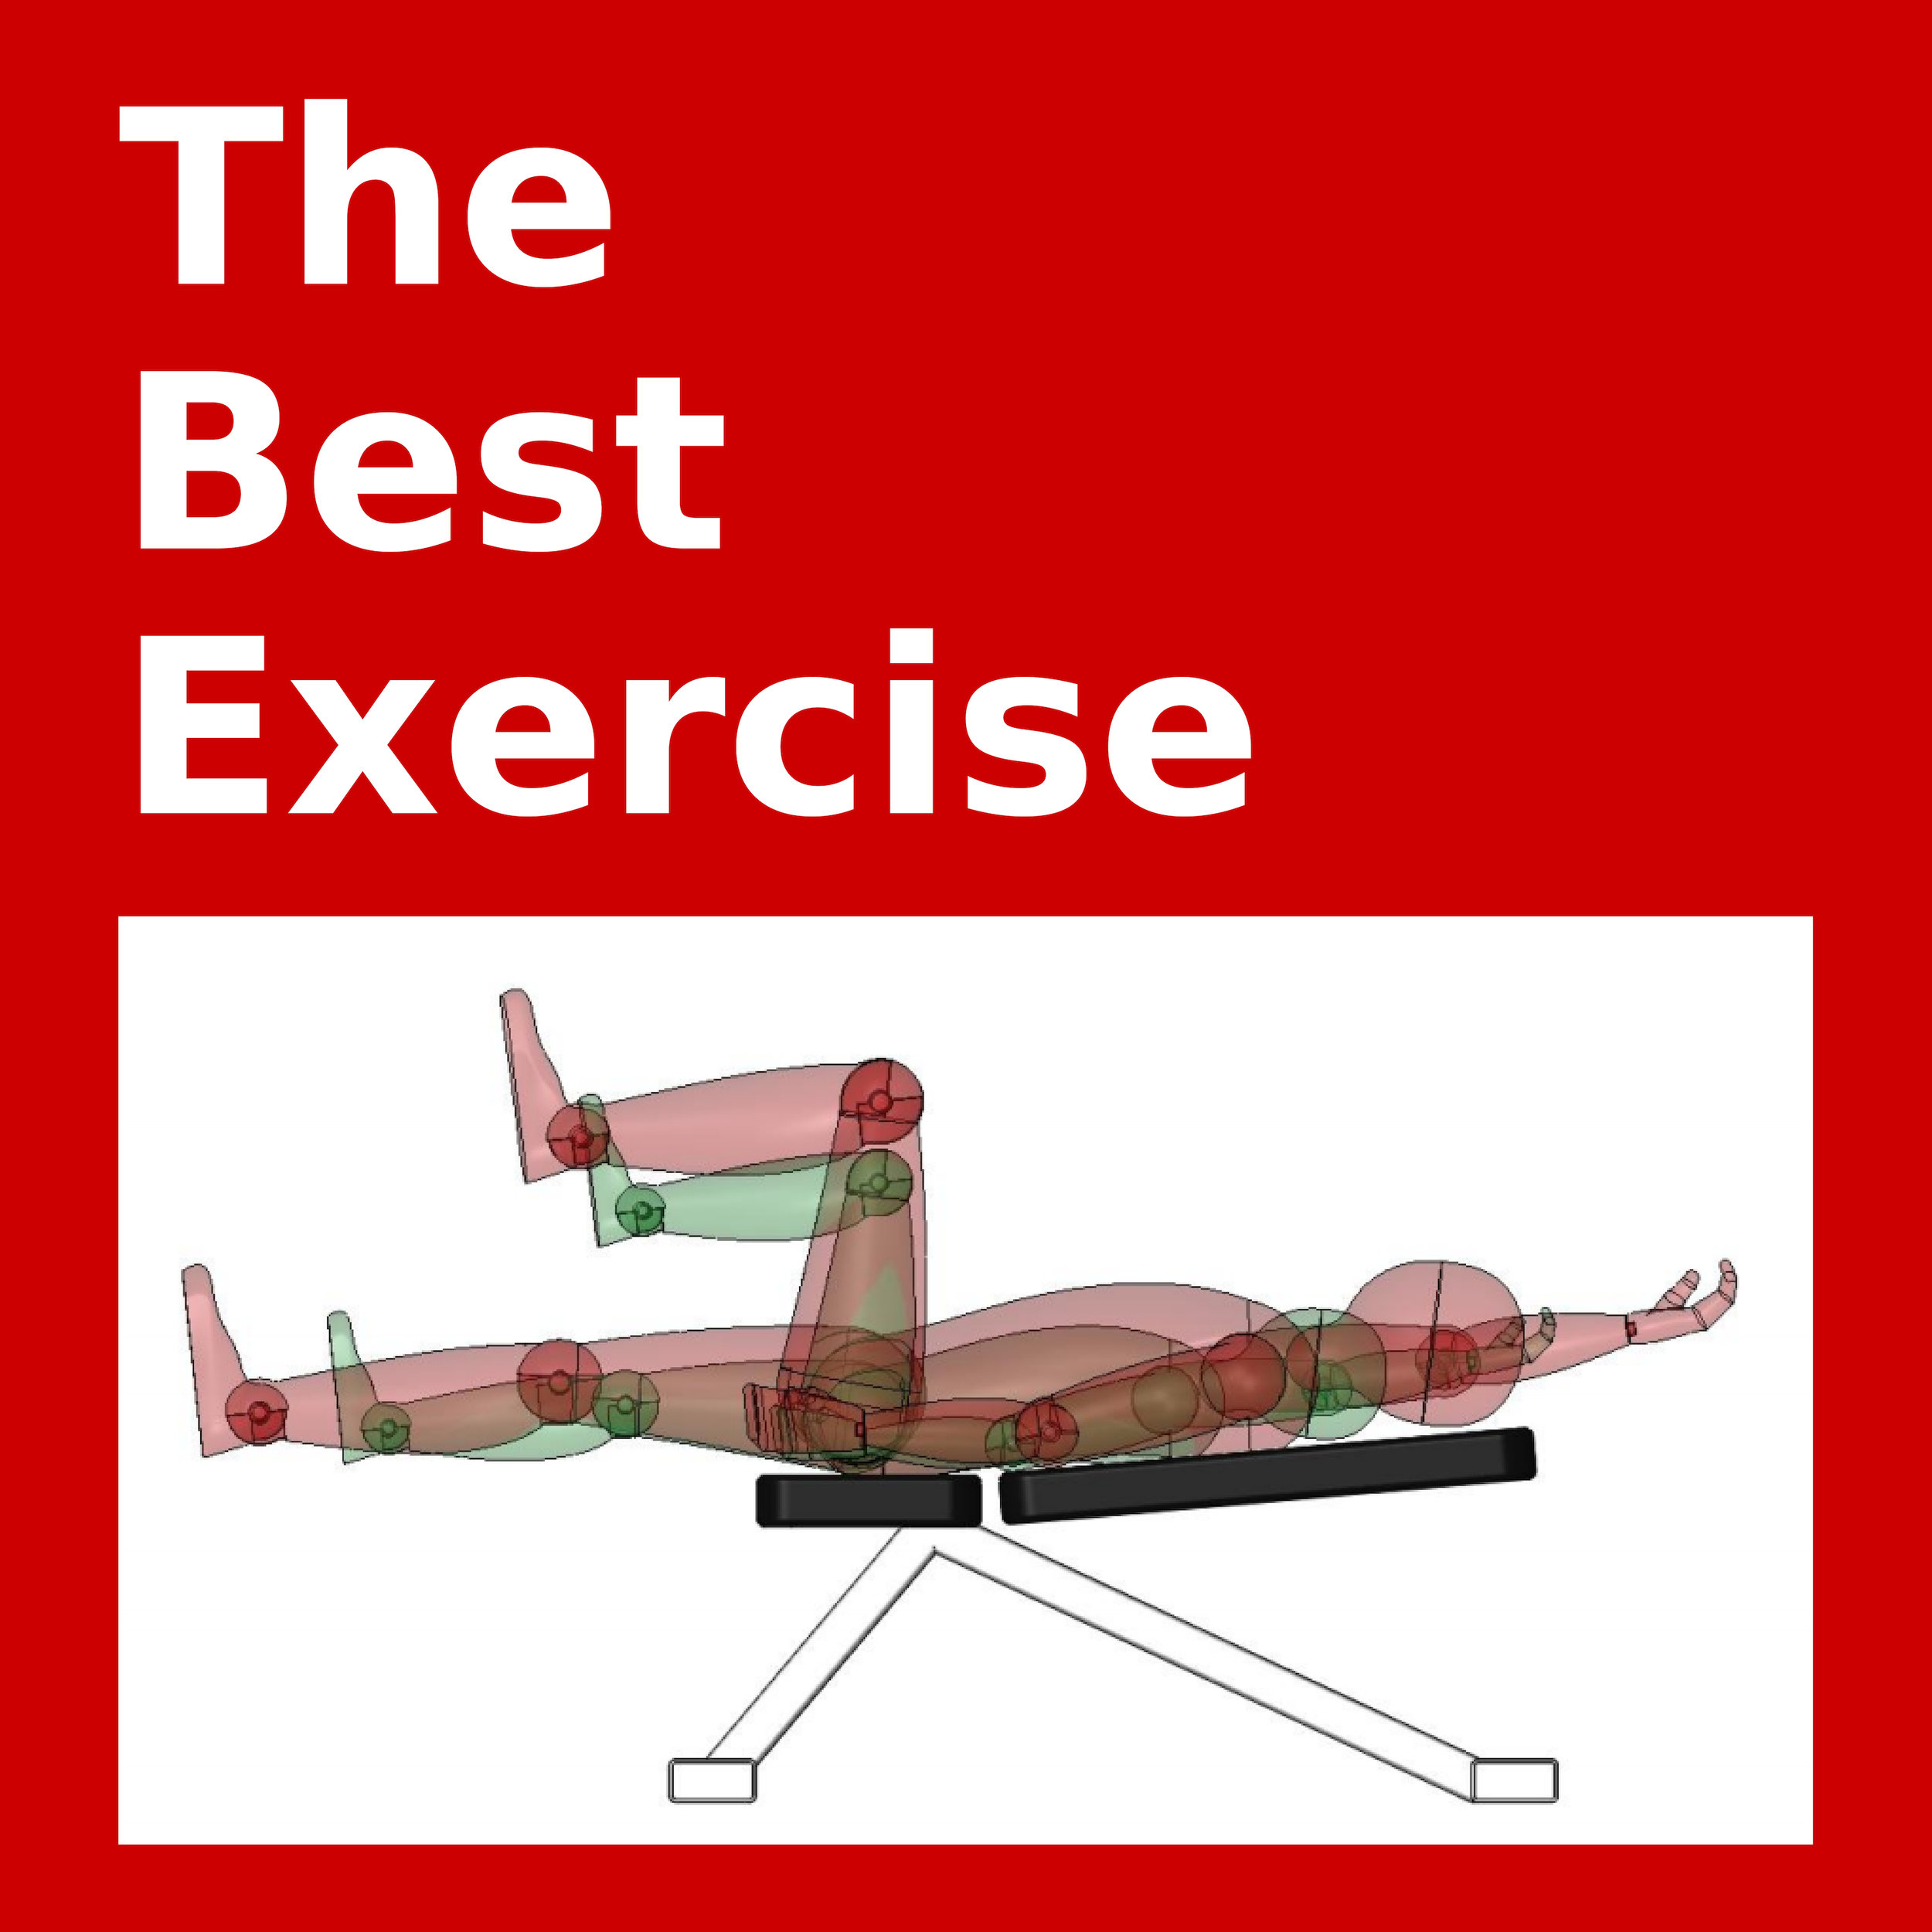 The Best Exercise.jpg